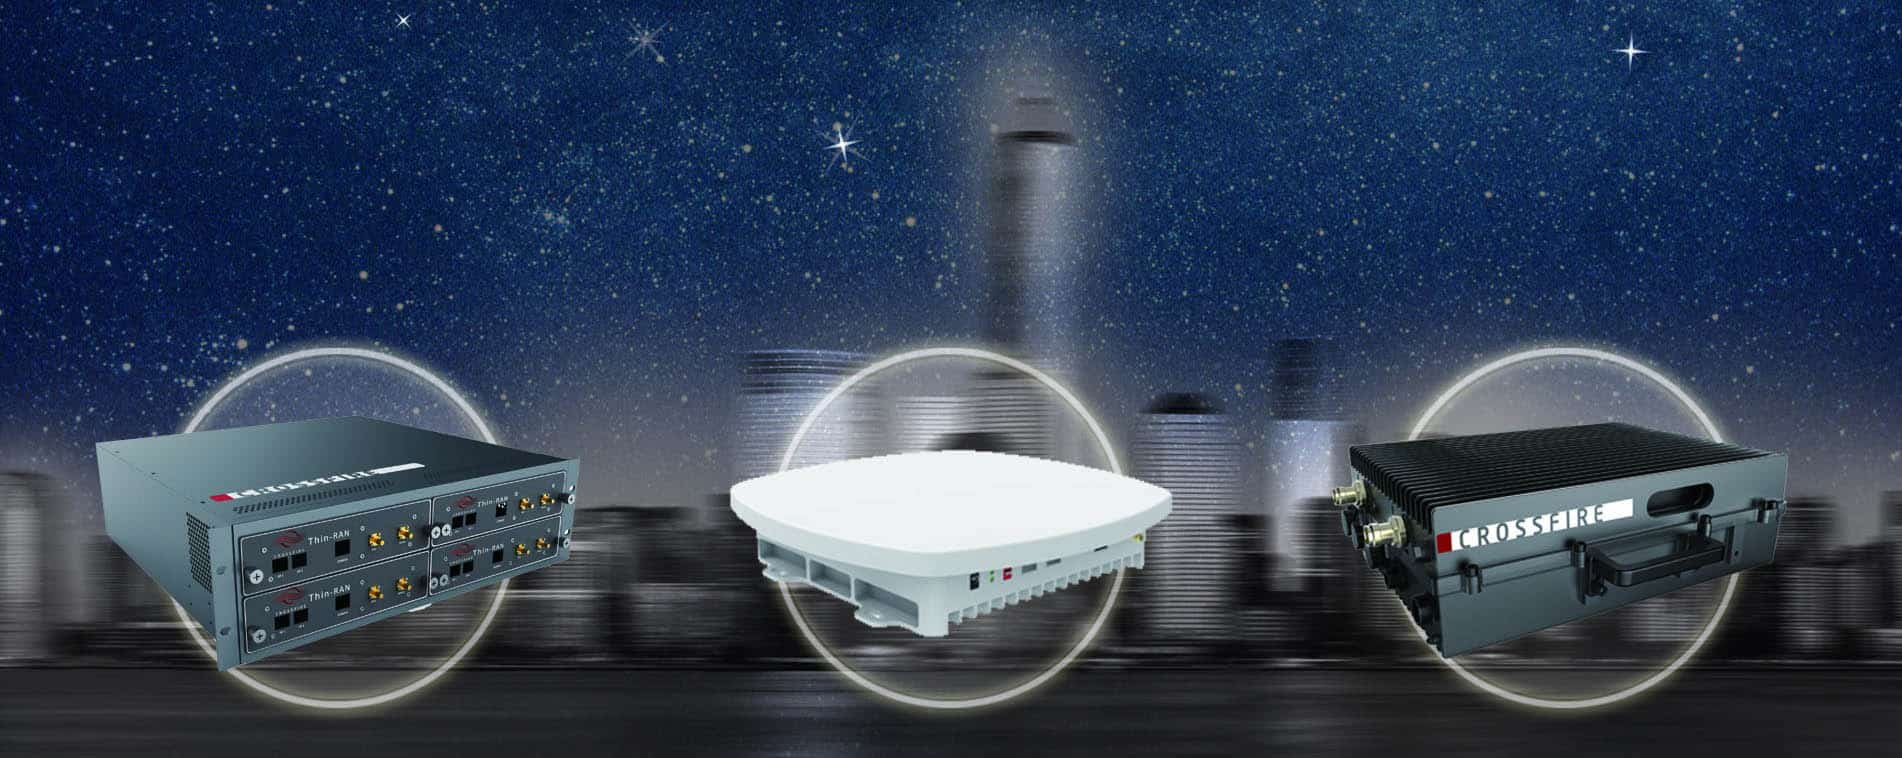 Best Cell Phone Signal Booster 2019 – The Complete Guide